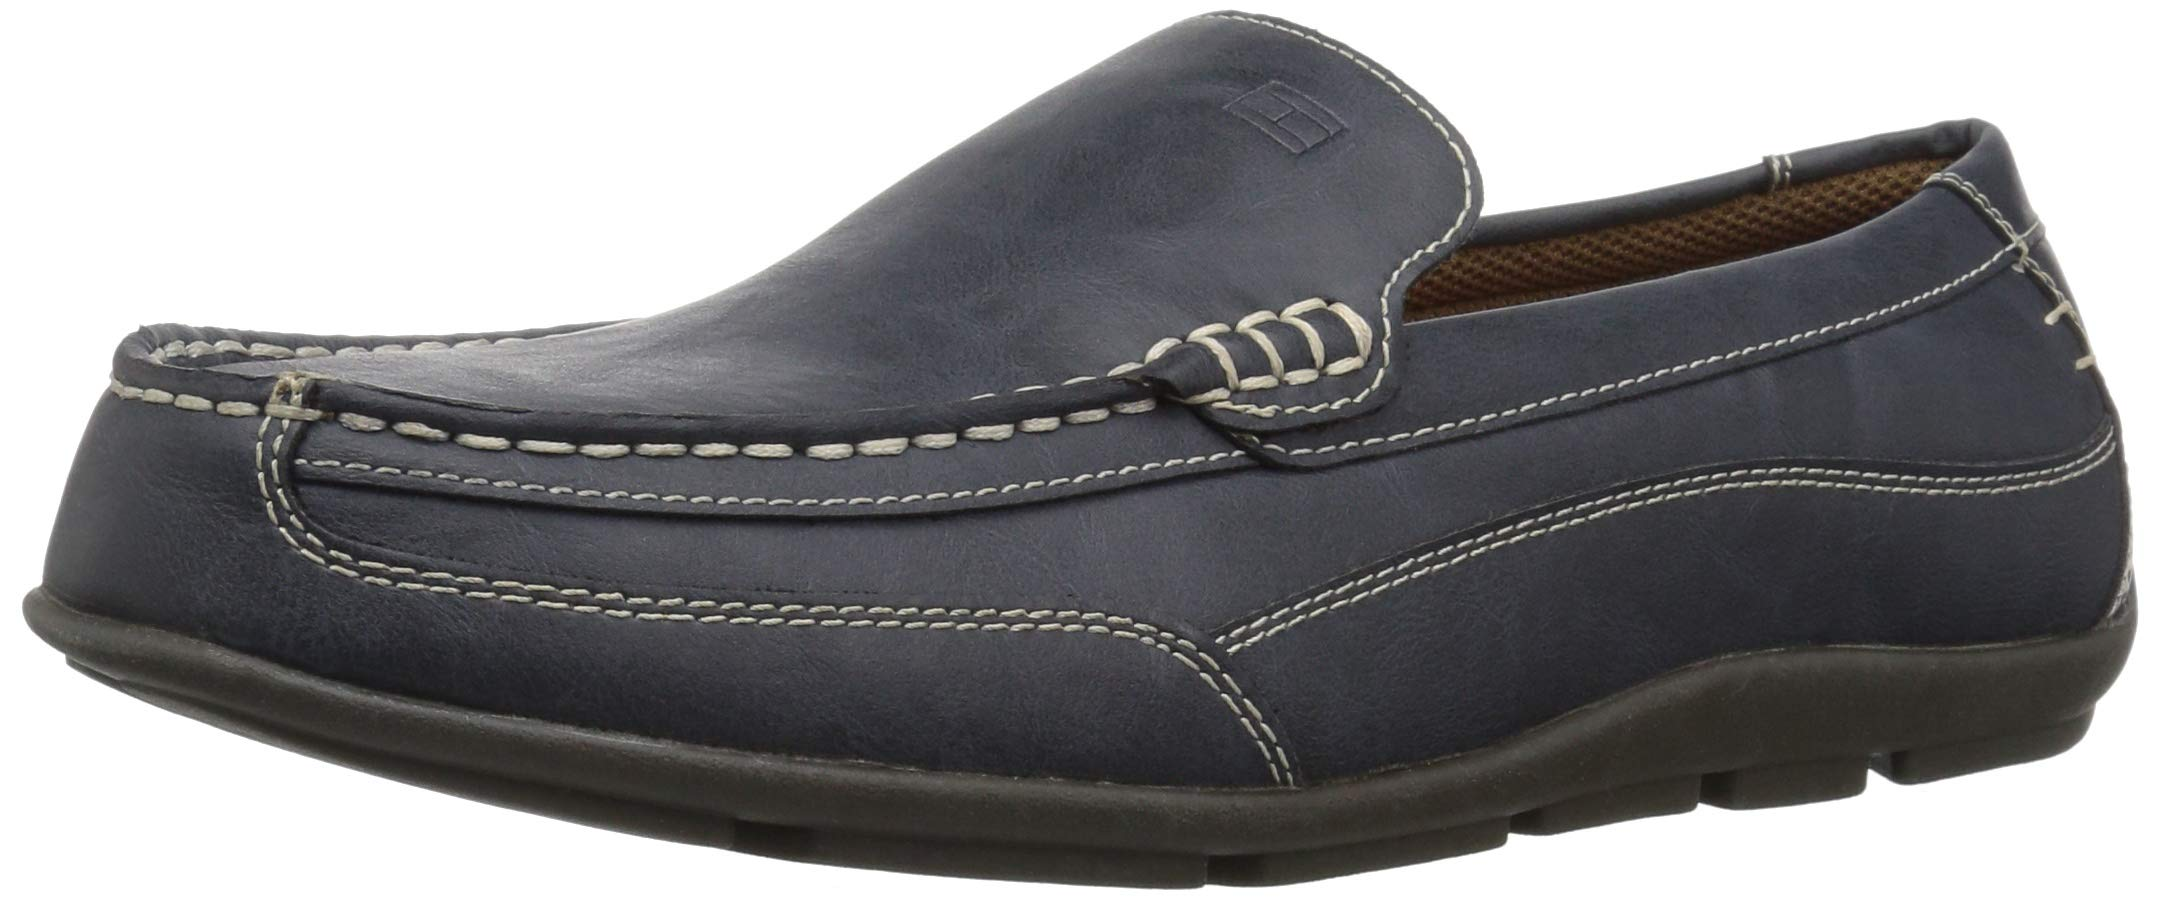 Tommy Hilfiger Men's DATHAN Shoe, navy, 11.5 Medium US by Tommy Hilfiger (Image #1)